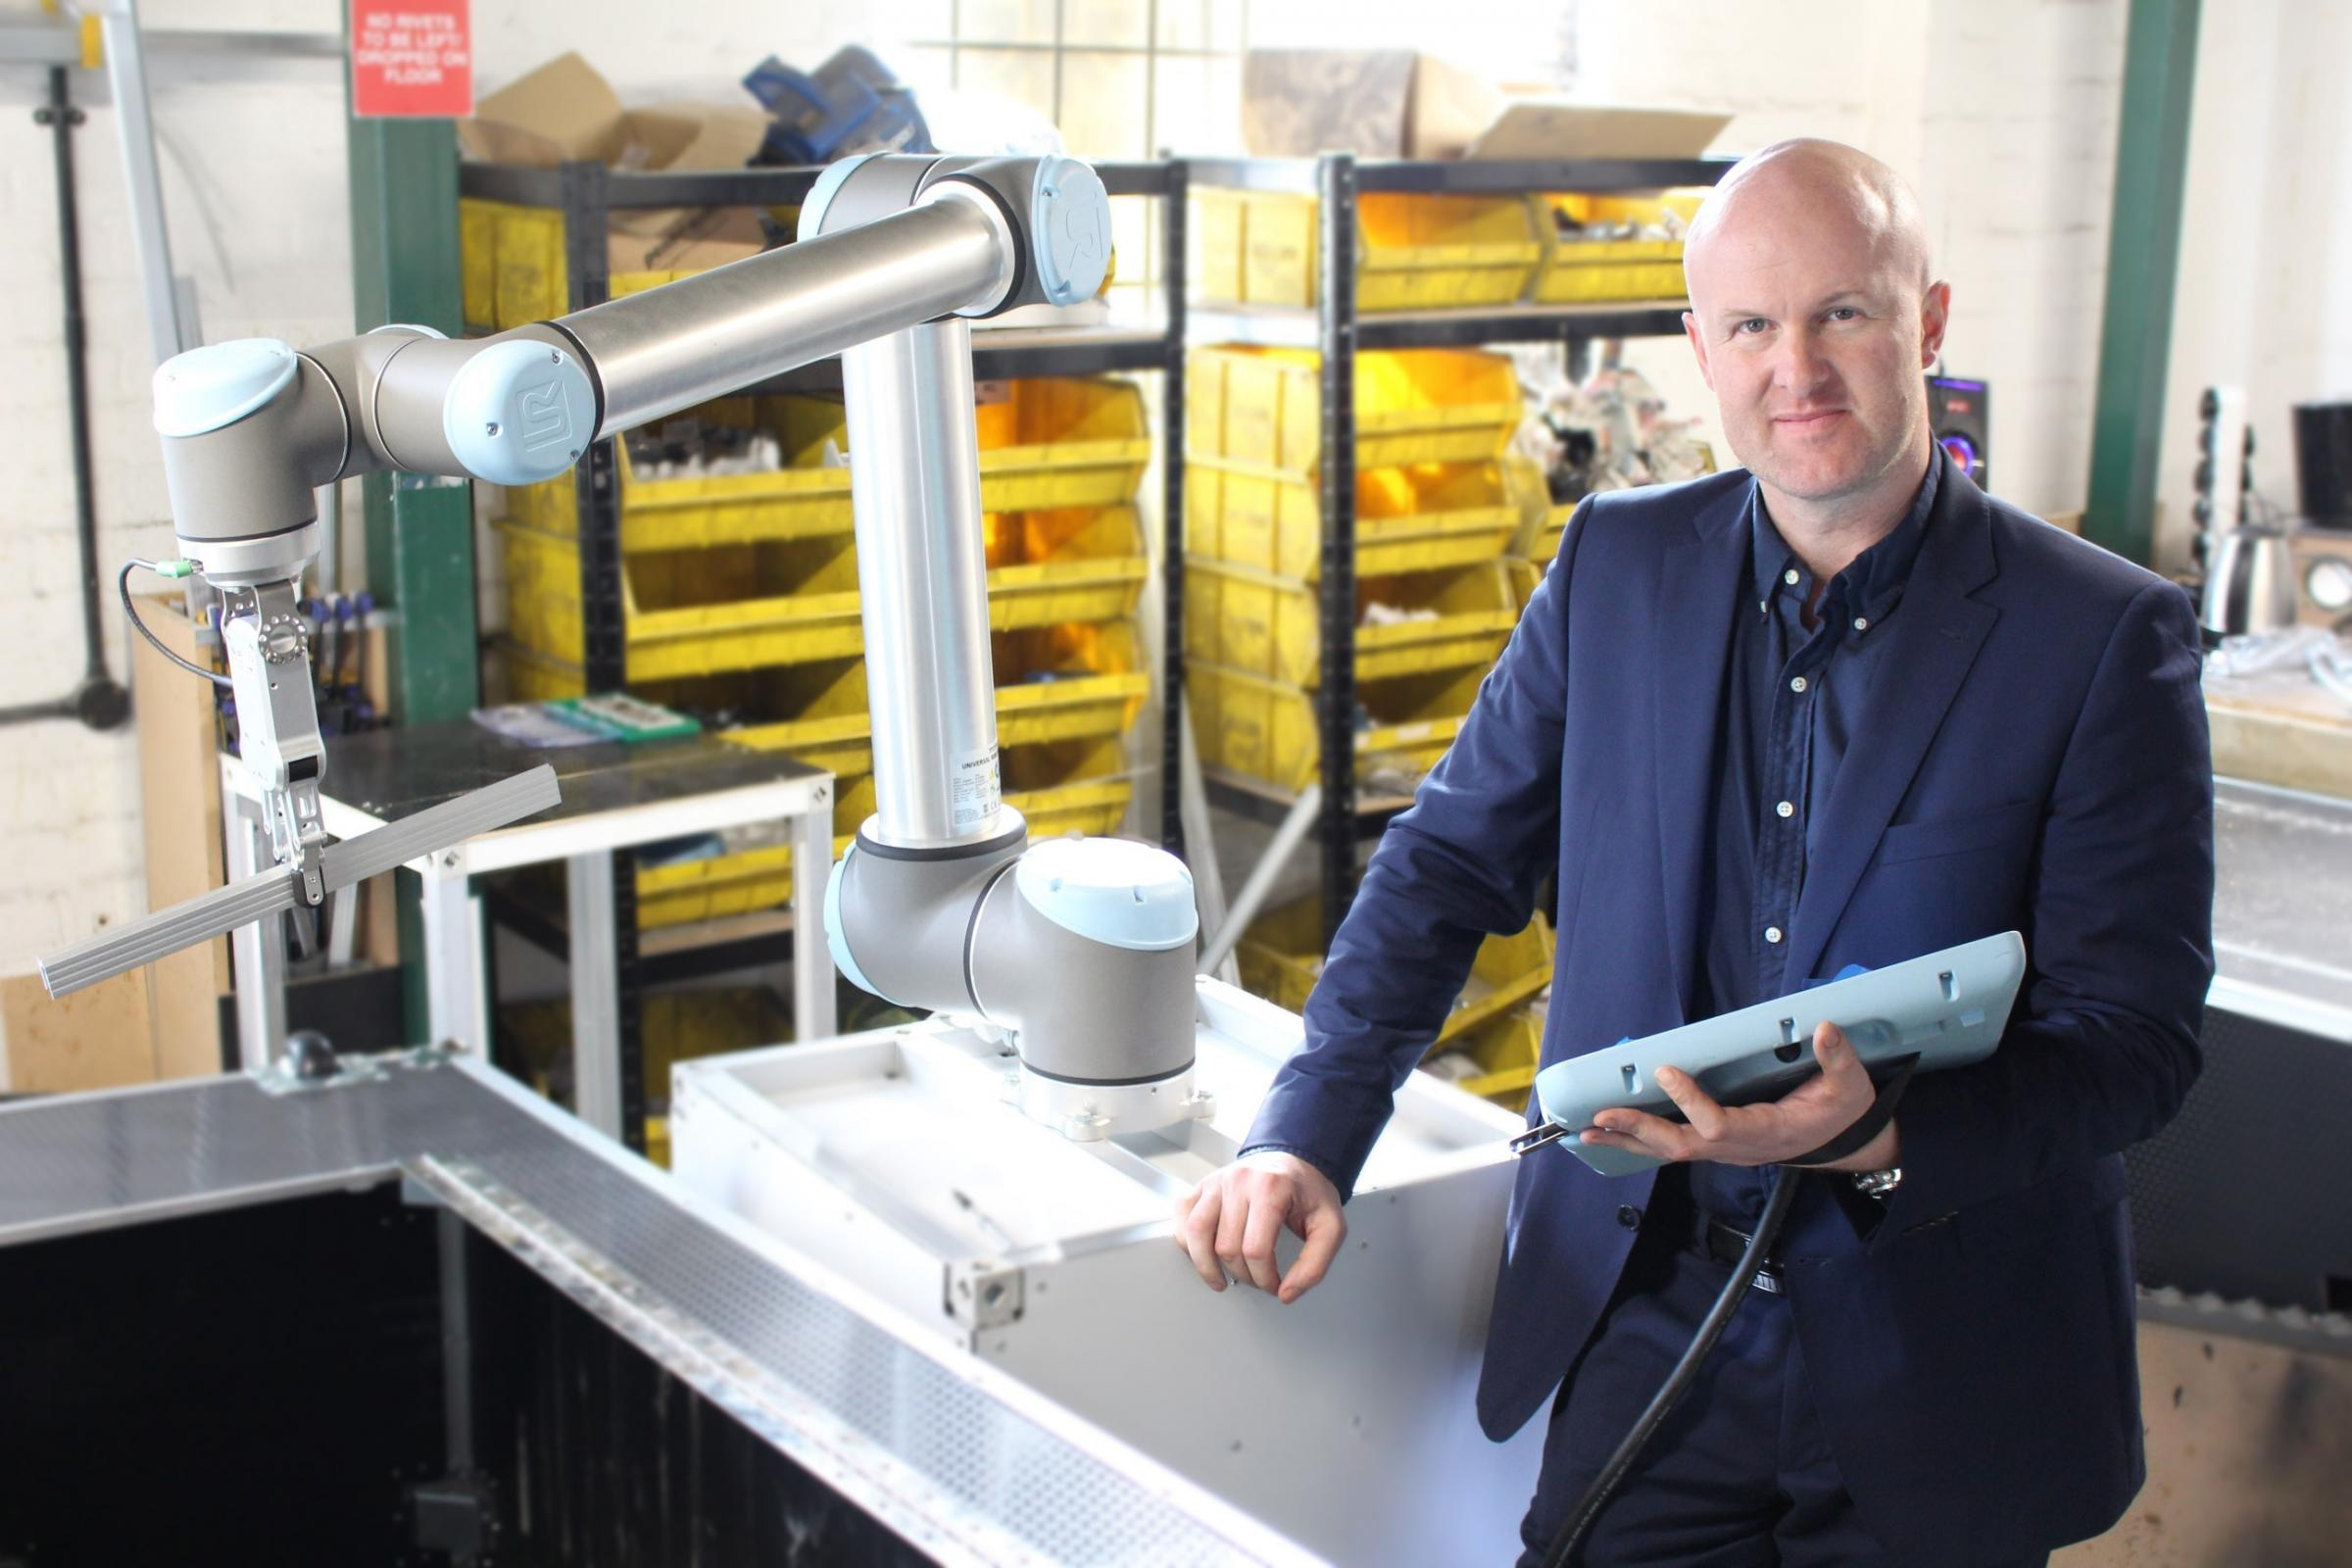 Tim Warrington, CEO and founder of Bots.co.uk, with the innovative 'Cobots'.